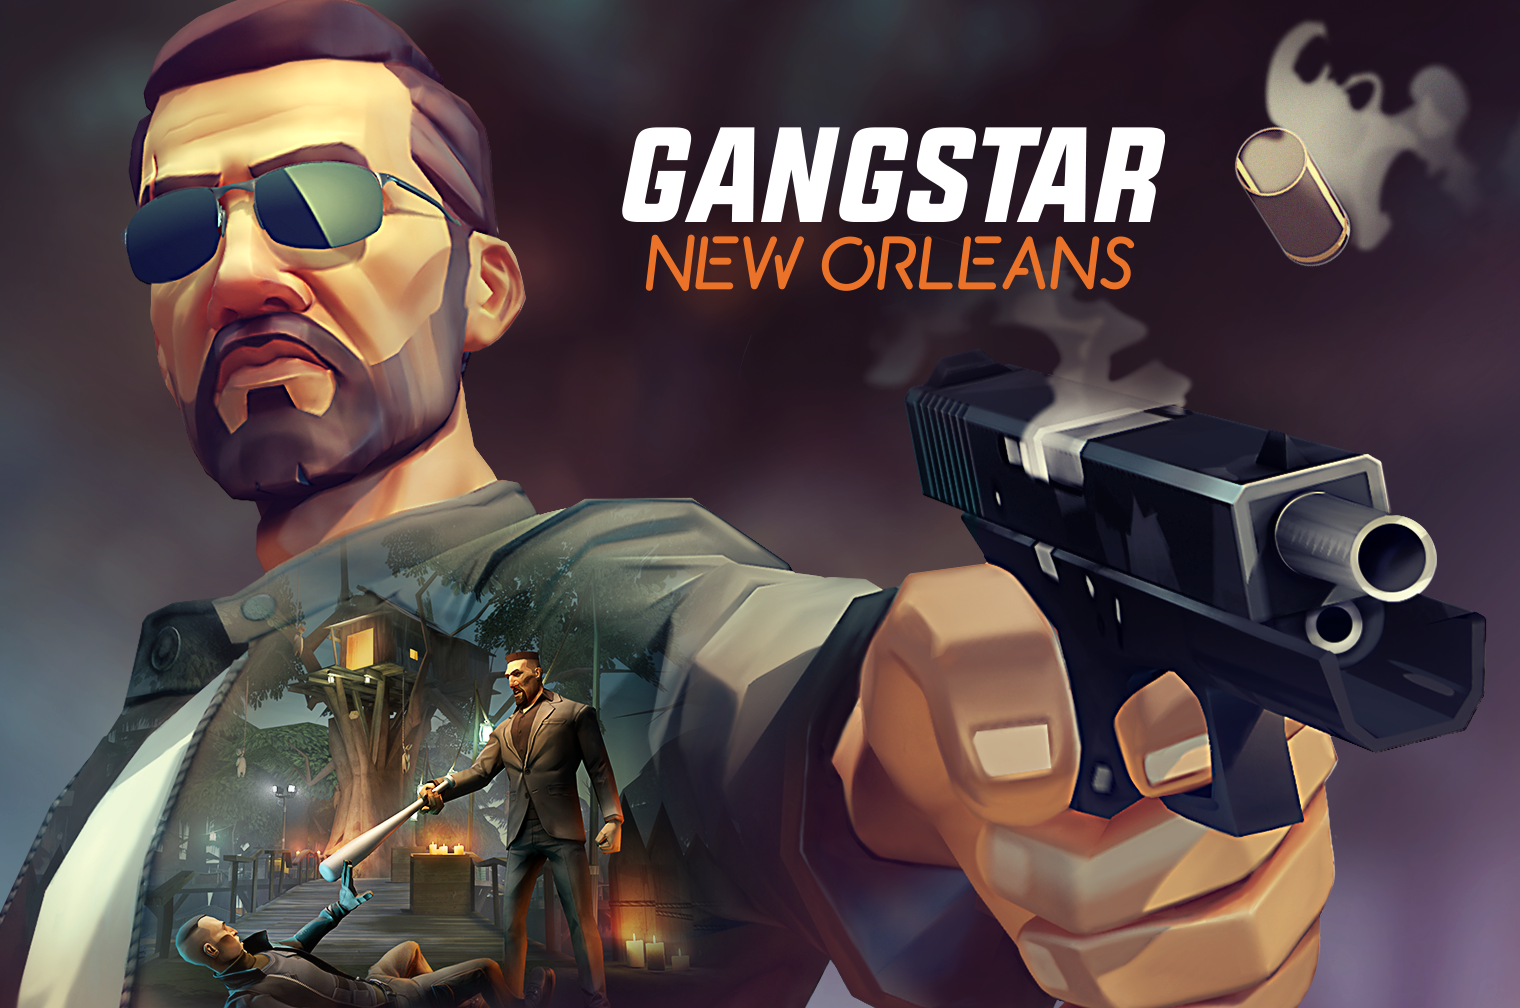 Image Result For Gangstar New Orleans Wallpaper Android Hacks New Orleans Android Games